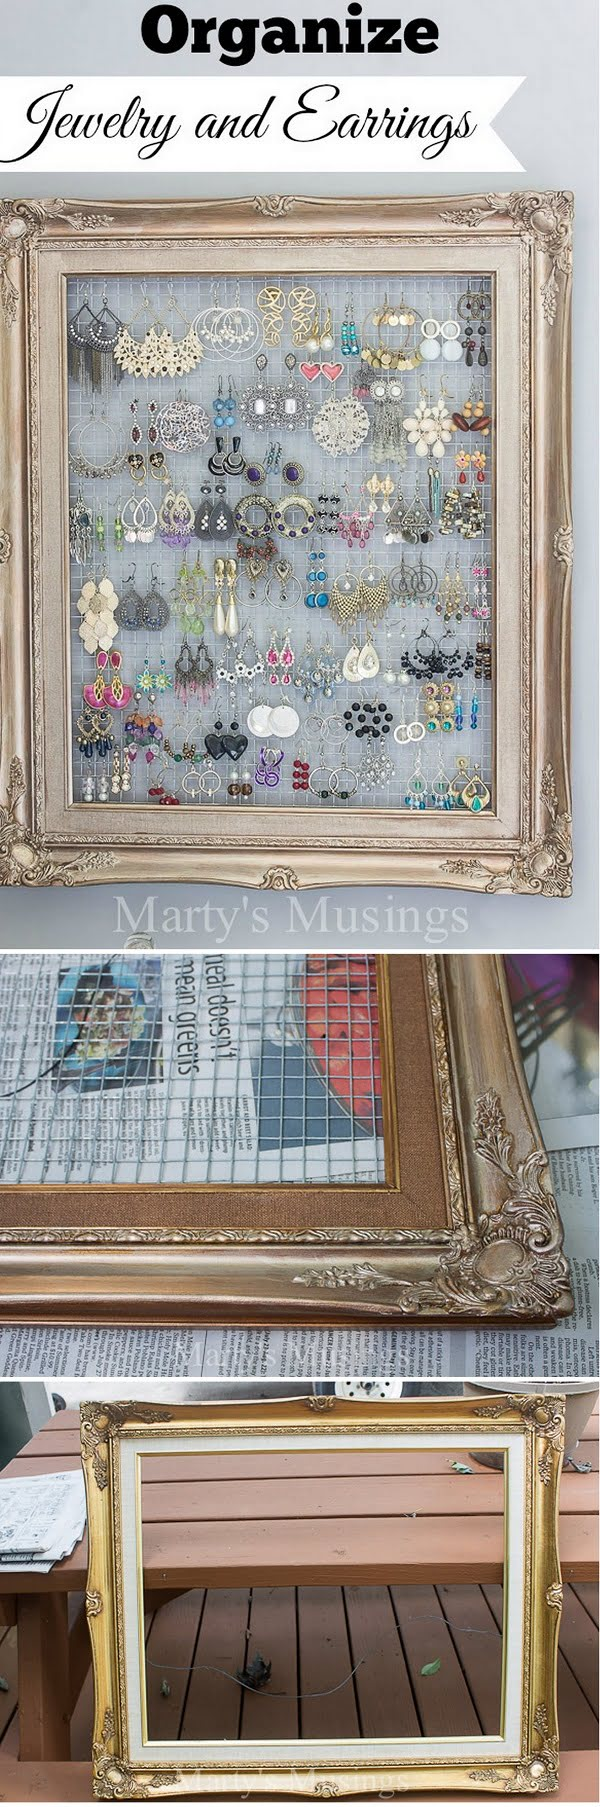 Check out this easy idea on how to make a #DIY framed jewelry organizer for #homedecor on a #budget #crafts #project